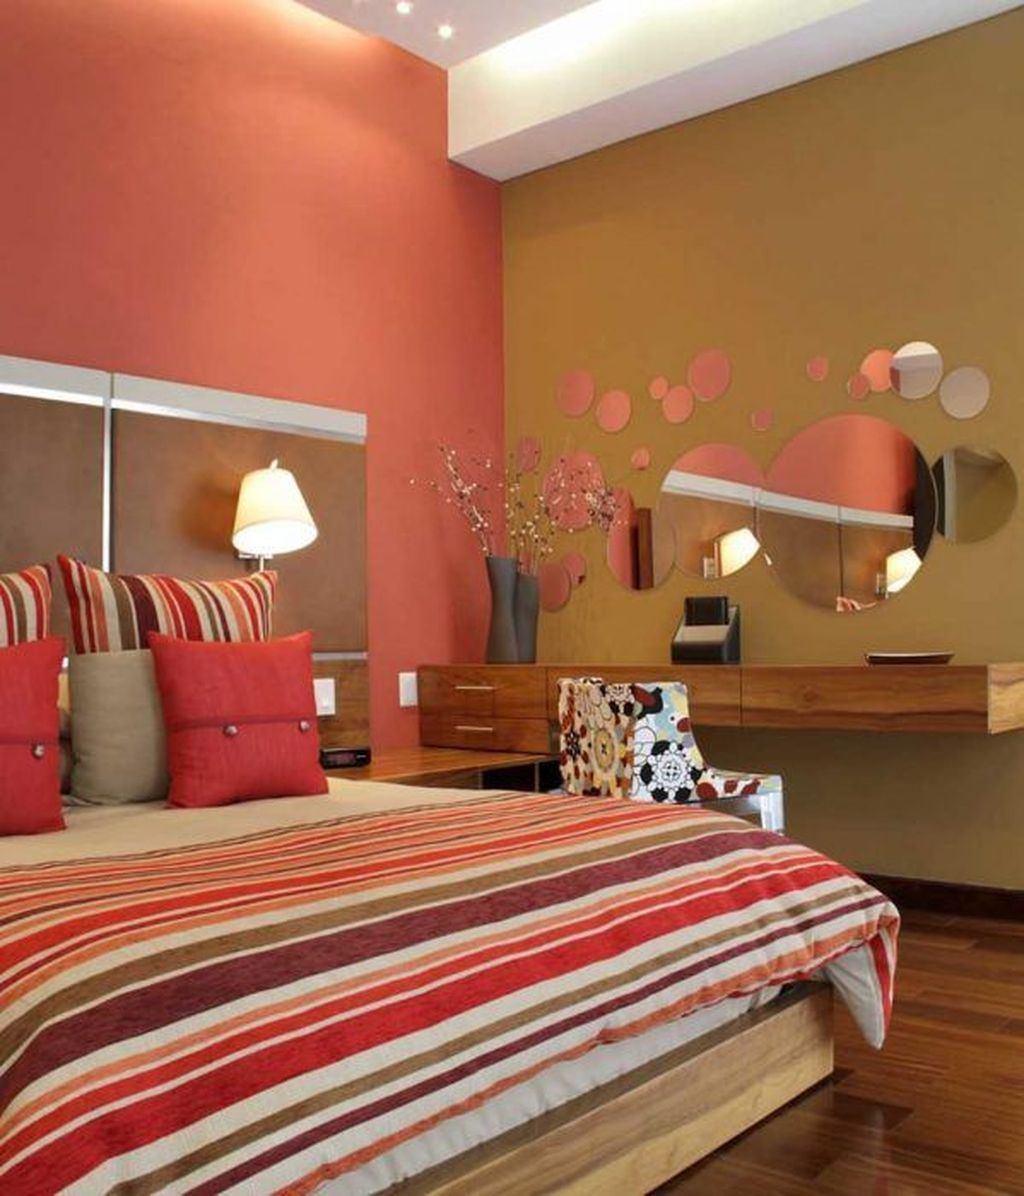 33 Fabulous Bedroom Color Ideas Bedroom Wall Colors Master Bedroom Colors Room Colors